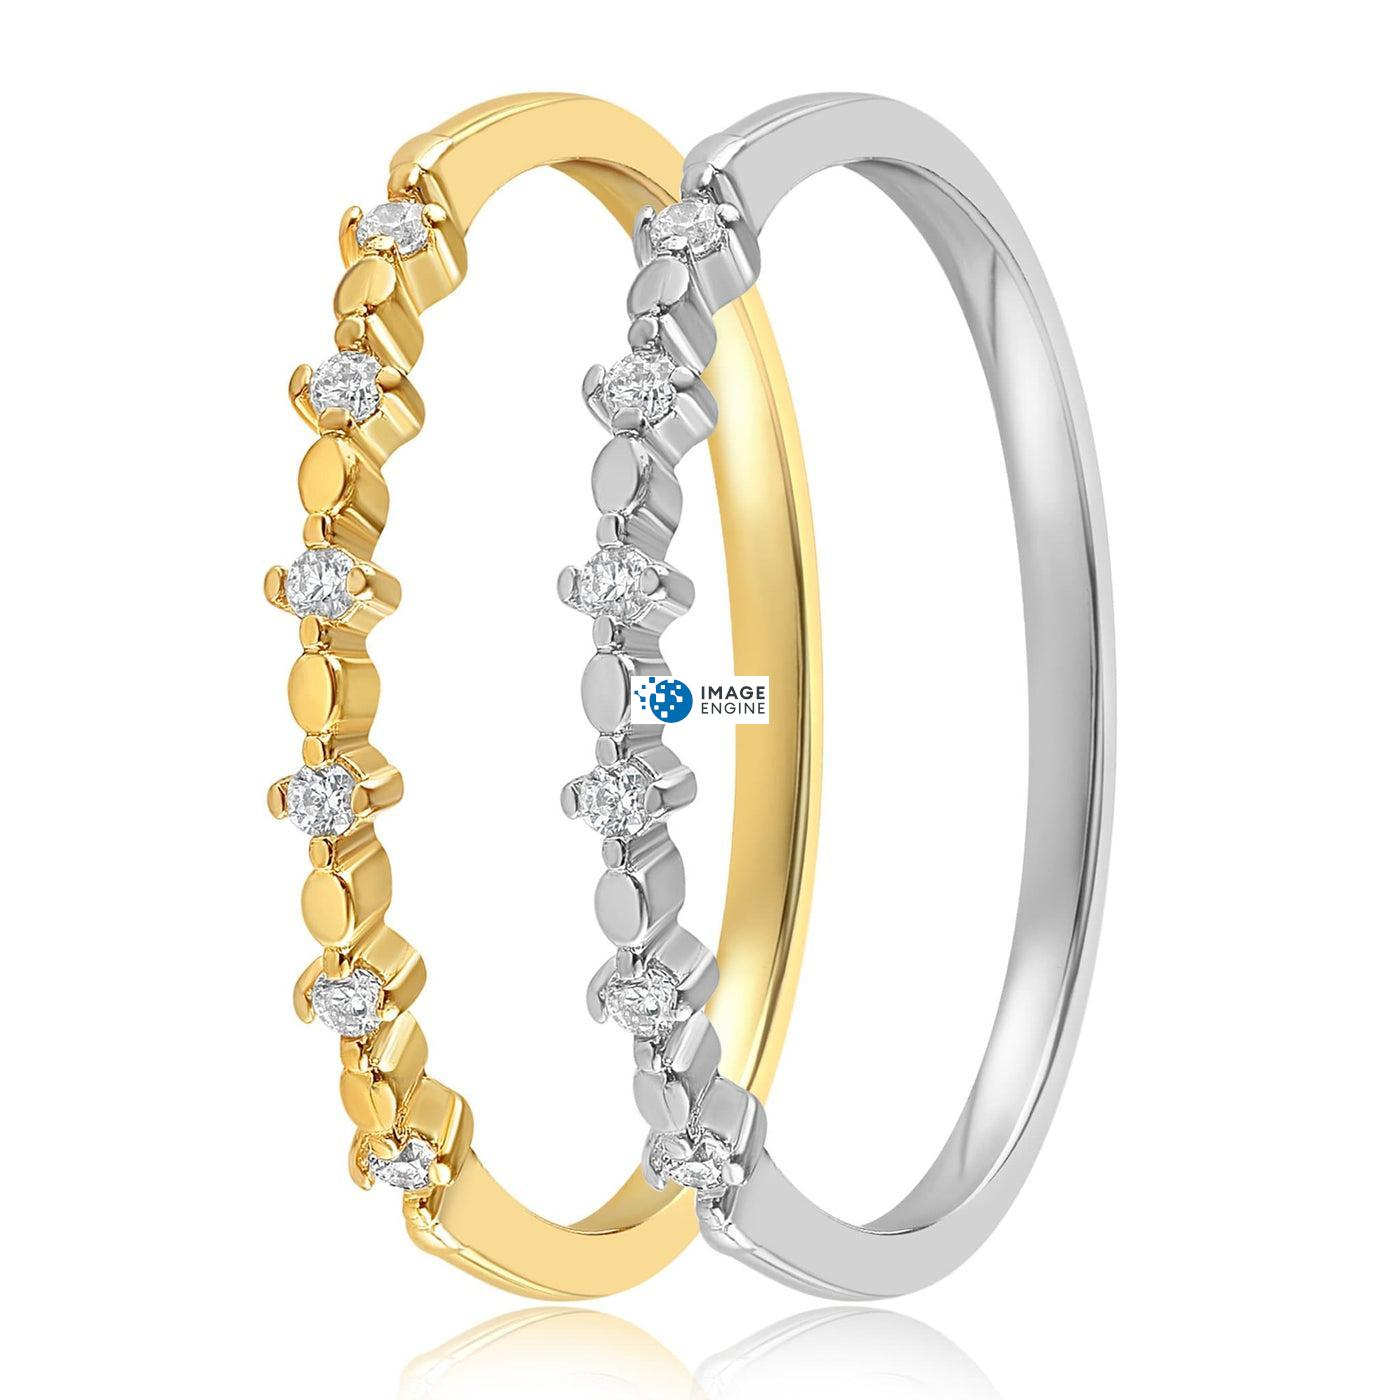 Nicolette Stackable Ring - Side by Side - 18K Yellow Gold and 925 Sterling Silver